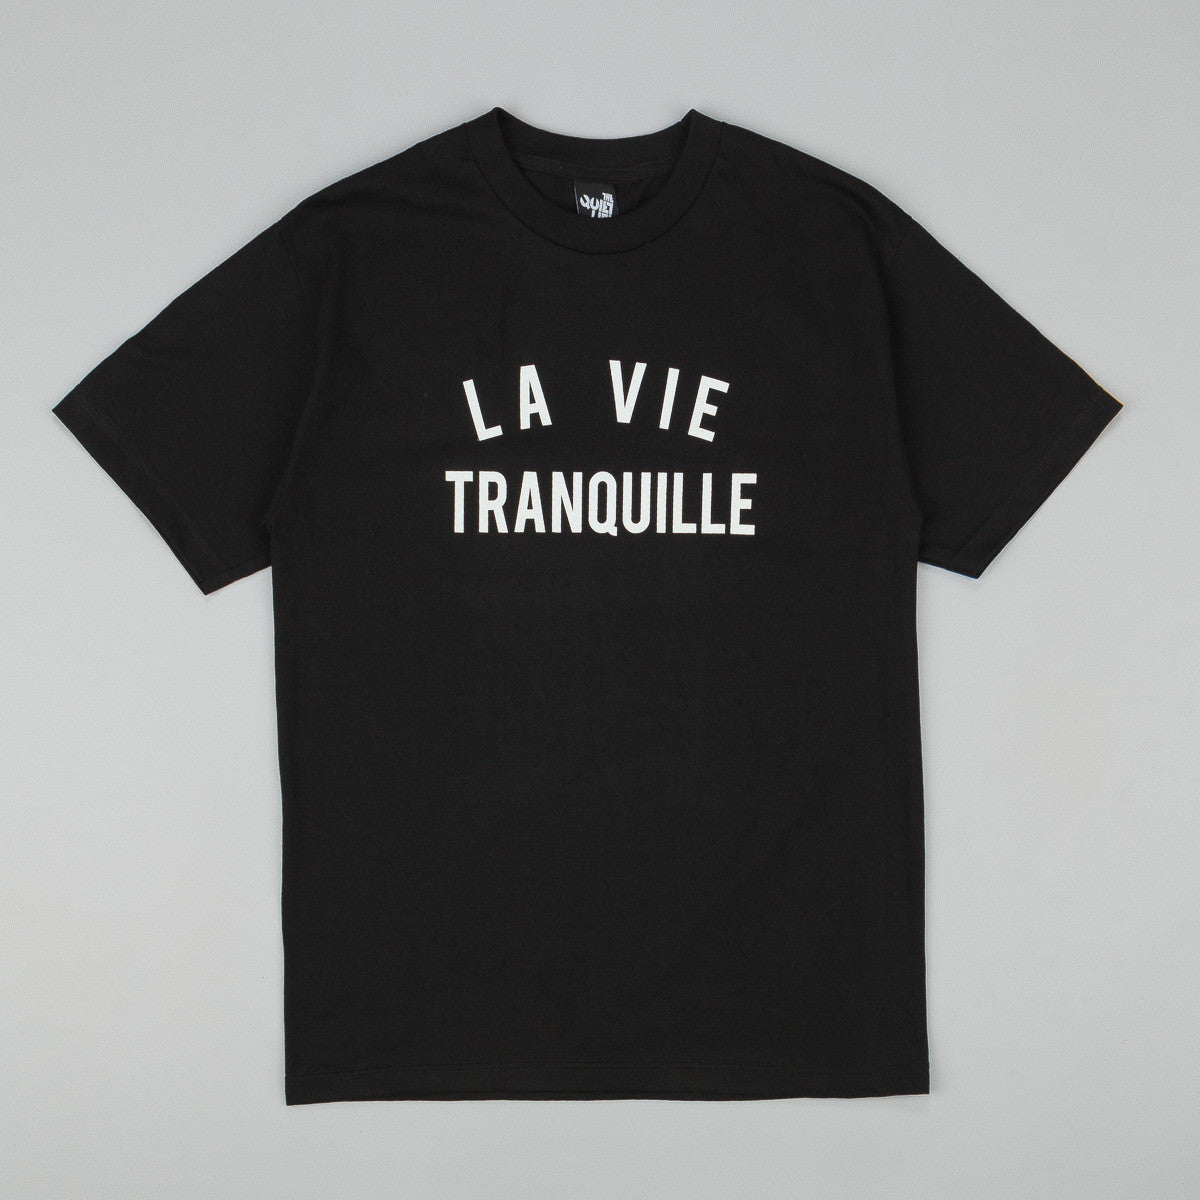 The Quiet Life La Vie T-Shirt